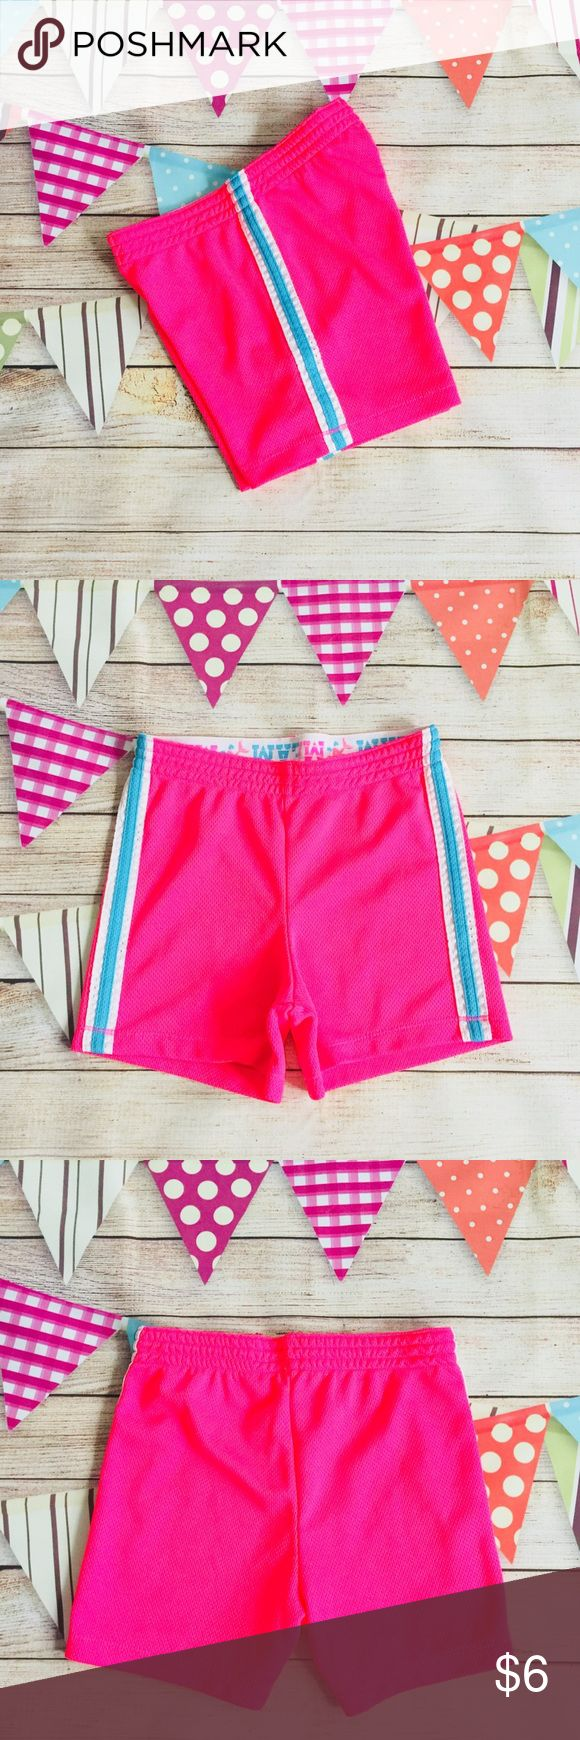 💥5 for $18💥Girl Pink Blue Shorts 💥Like 5 items 💥Add to a bundle 💥Make bundle offer for $18  ▫️Brand: Faded Glory ▫️Size: S (6-6X) ▫️Material: Polyester  ▫Condition: Preowned - Like New  ▫️Flaws: None  ▪️NO Trade/Hold ▪️Next Day Shipping ▪️Smoke Free/Kitty Friendly Home Faded Glory Bottoms Shorts